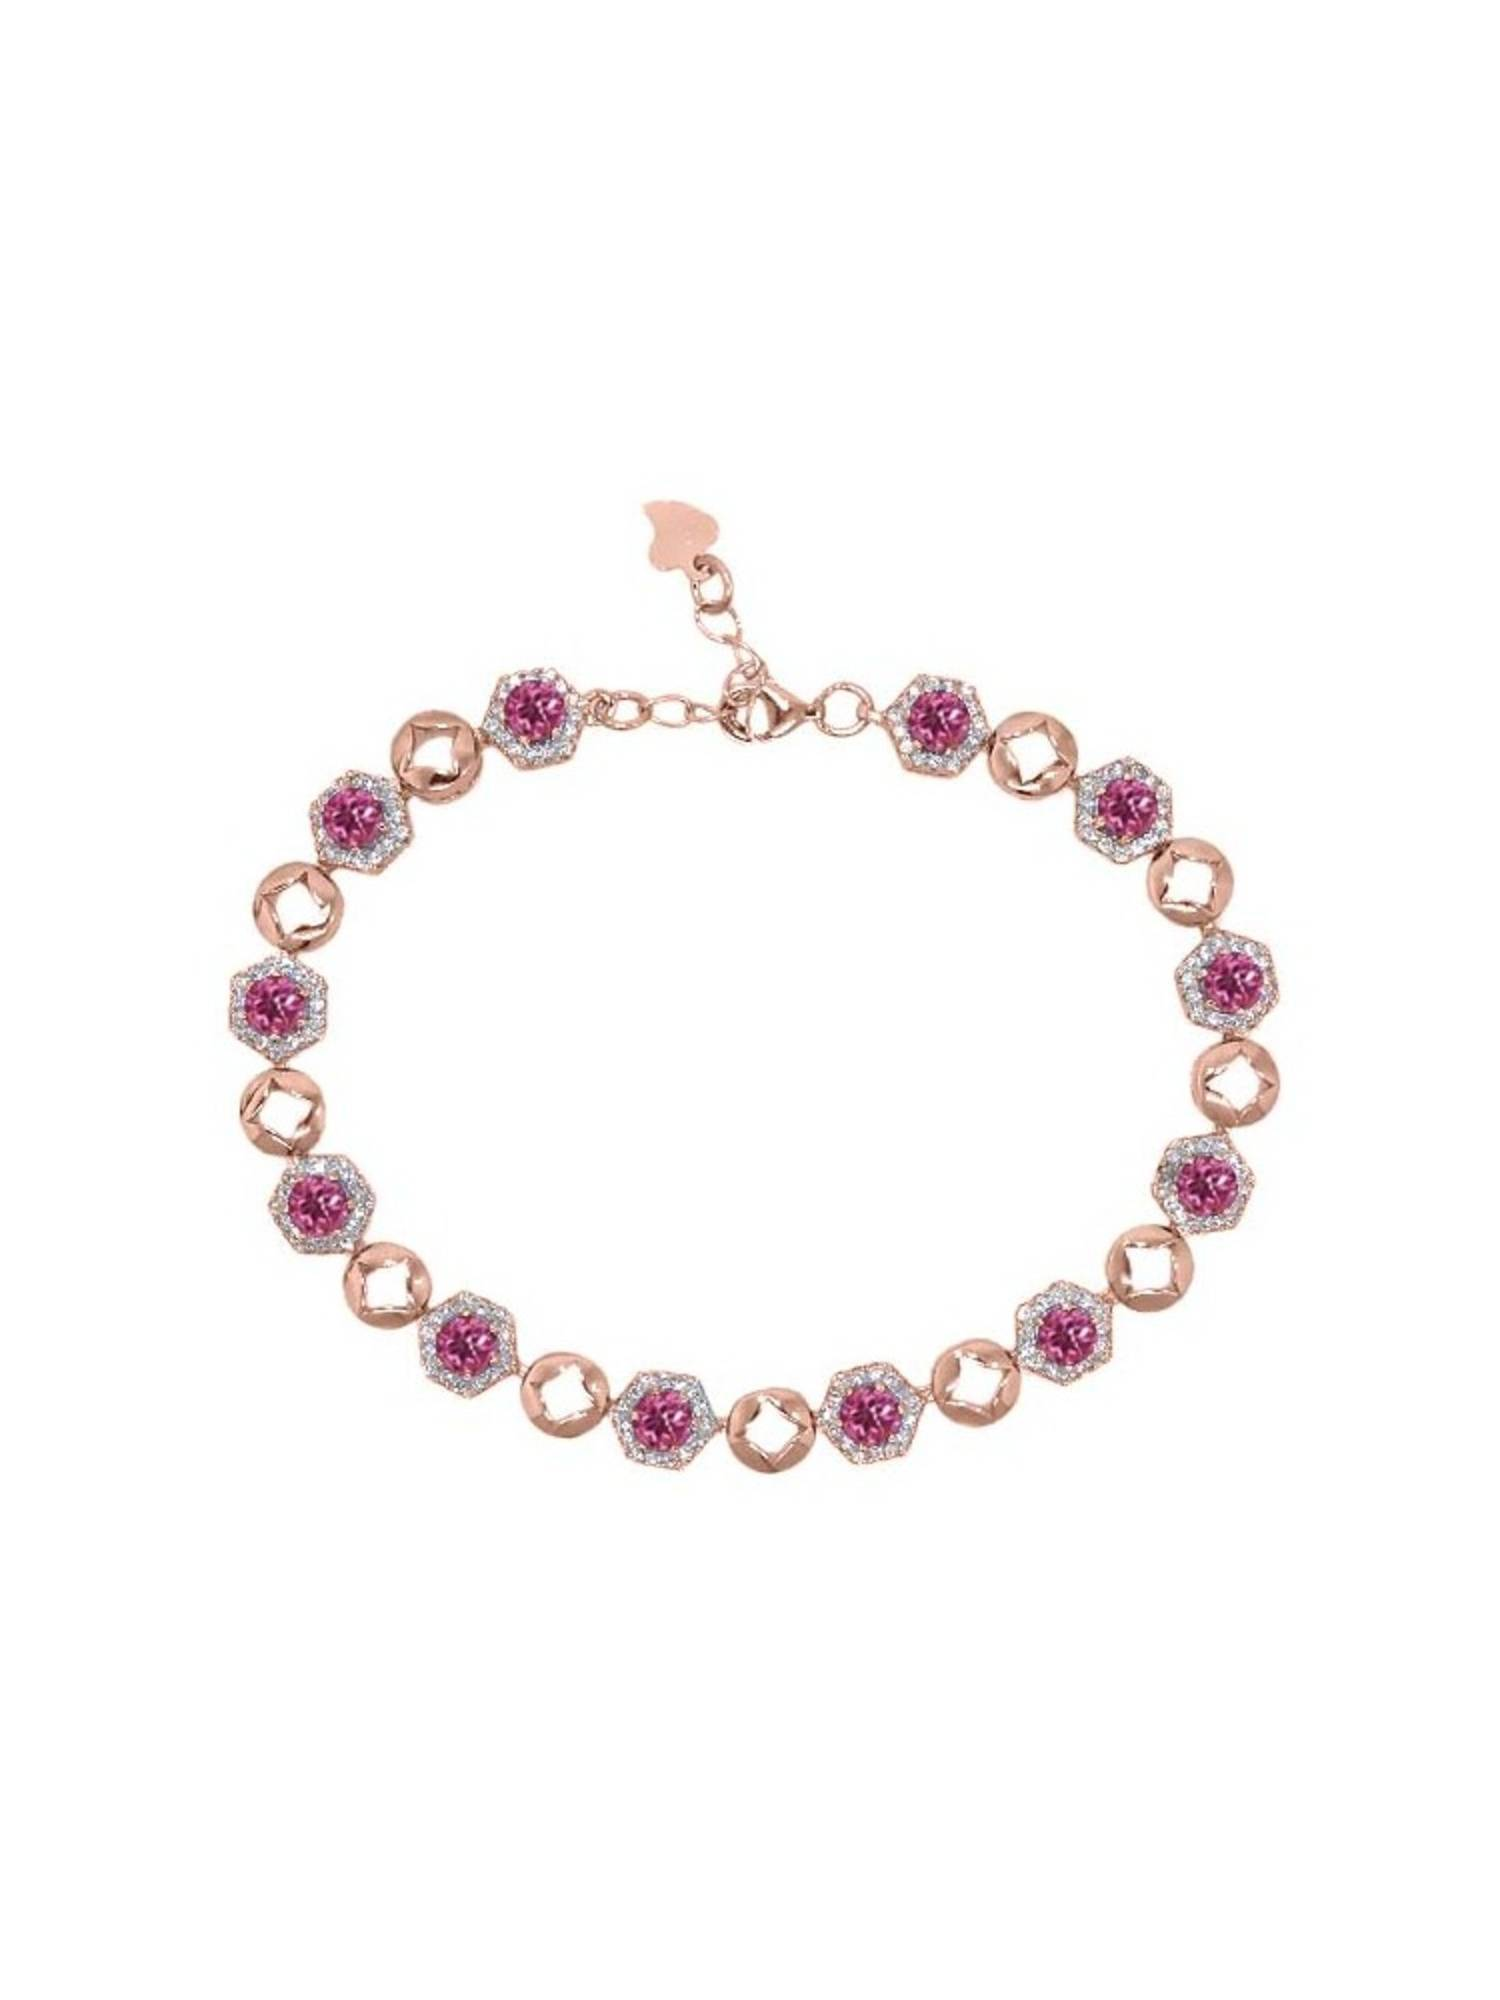 5.69 Ct Round Pink Tourmaline 18K Rose Gold Plated Silver Bracelet by